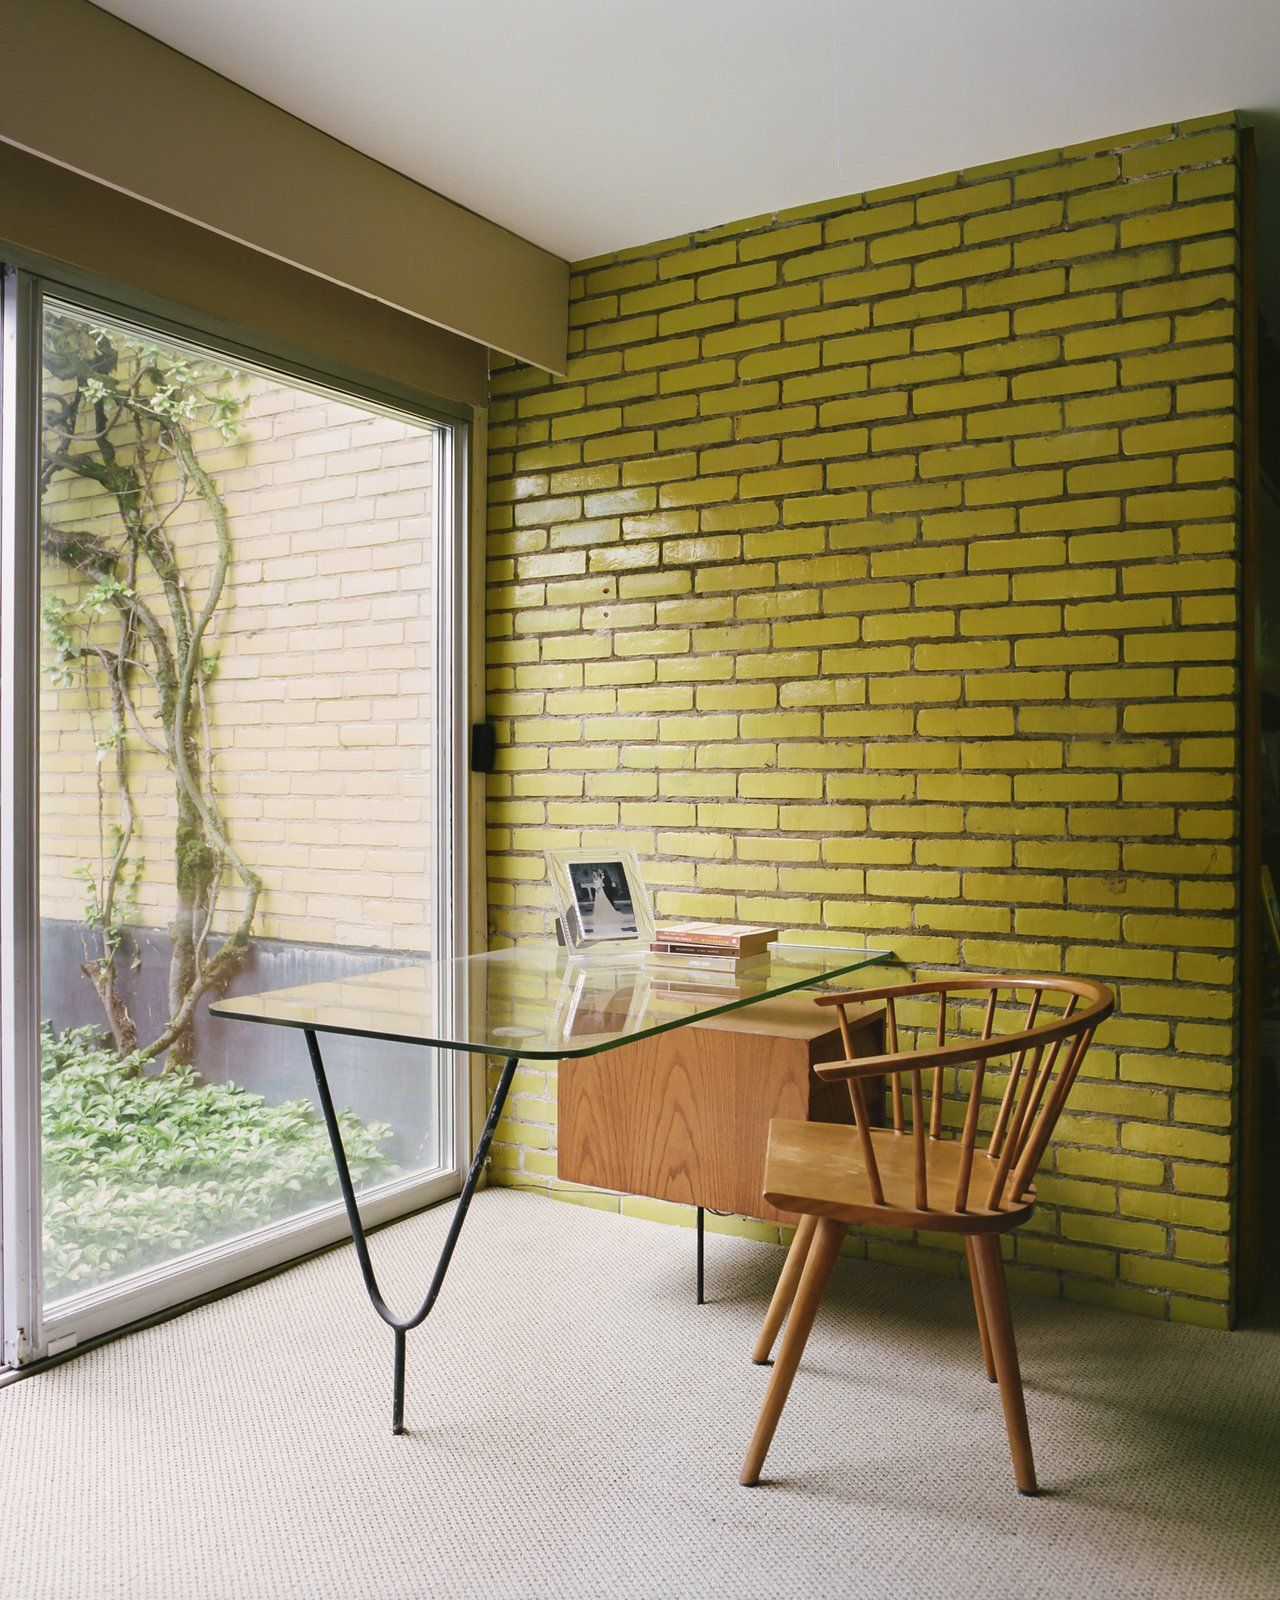 Office chair study room type desk and carpet floor photo 17 of 19 in this michigan couple found out they own the last standing home by alexander girard